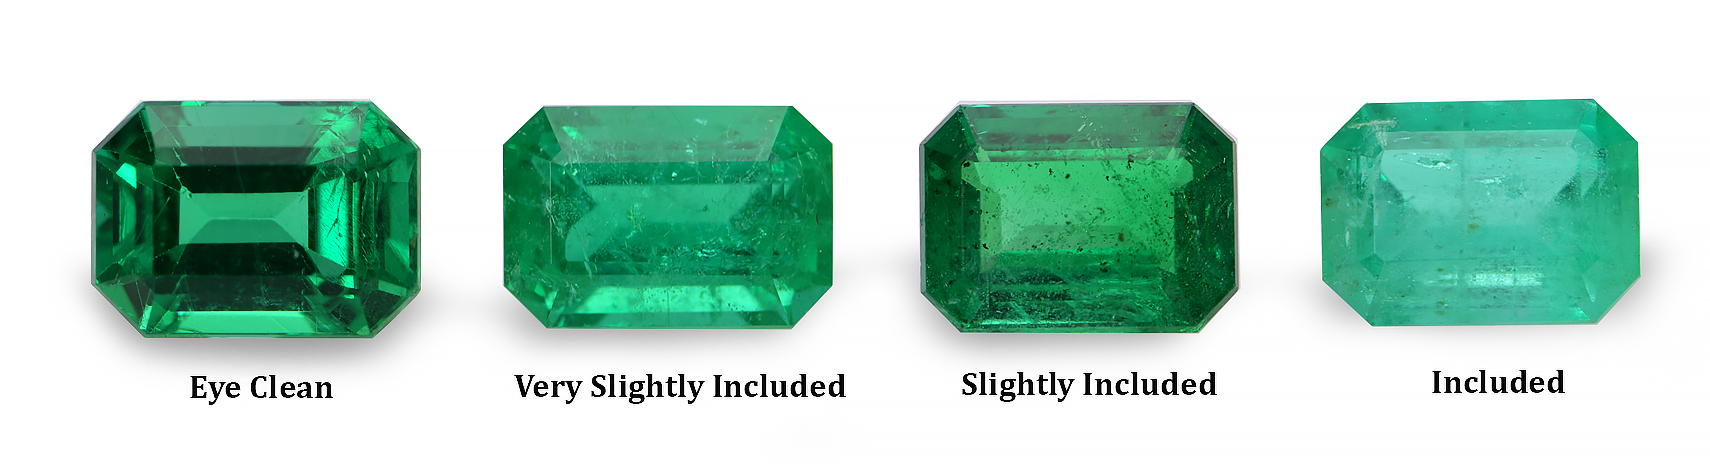 Judging Emerald Quality - Factors and Criteria For Value And